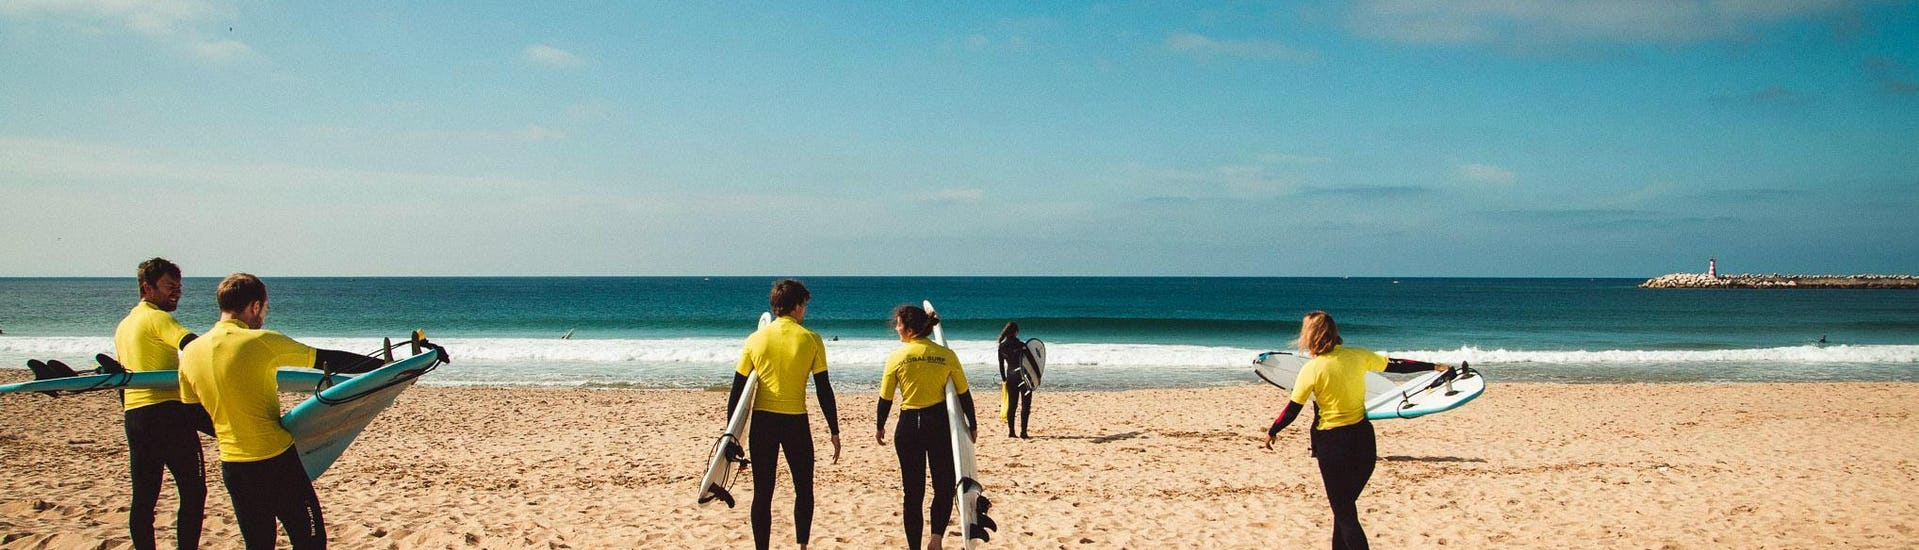 Surfing Week Lesson for Kids & Adults - All Levels